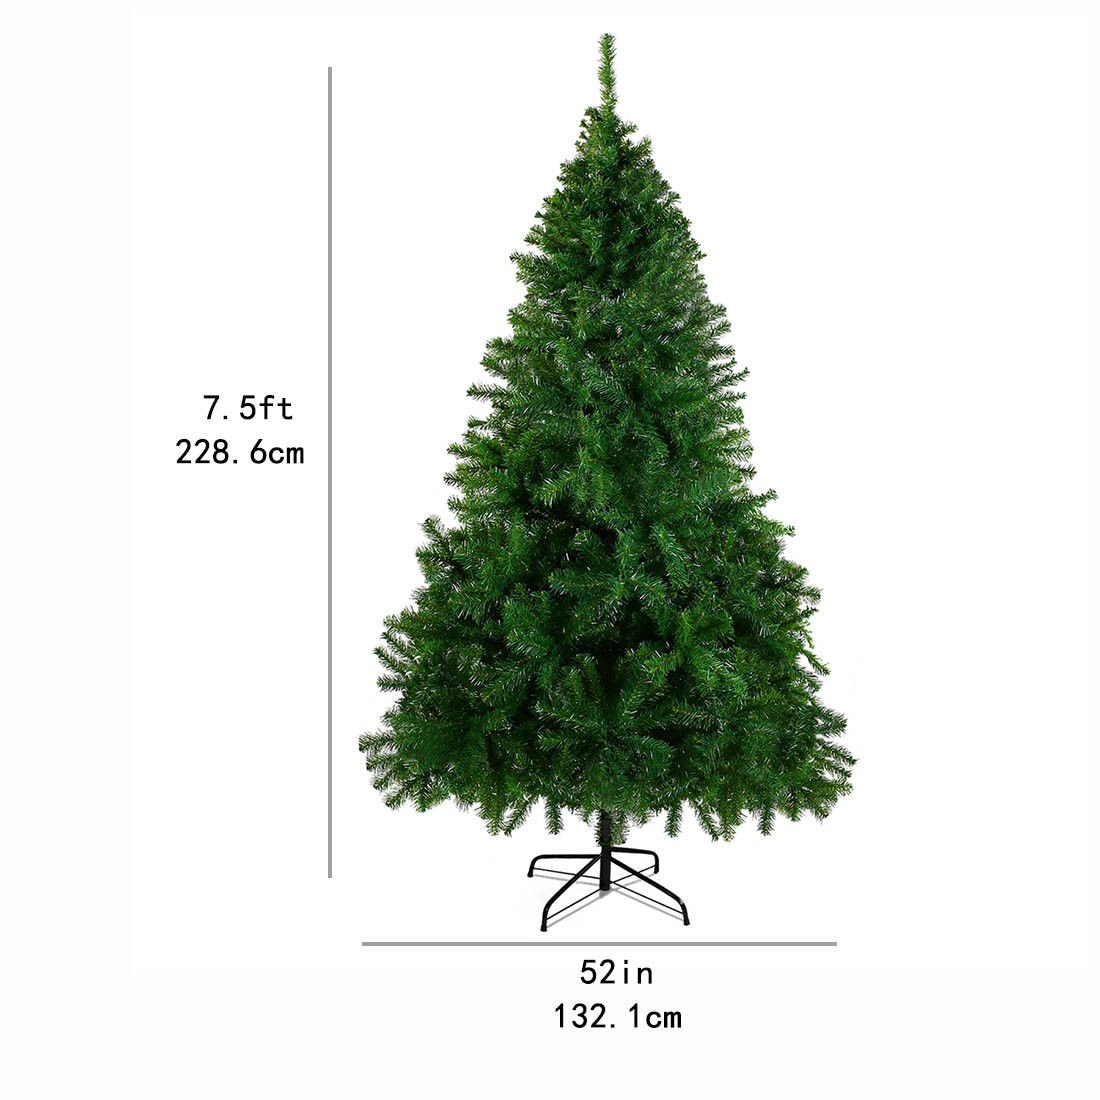 7.5'Premium Christmas Tree Spruce Hinged Artificial Christmas Tree W/ Stand by Unknown